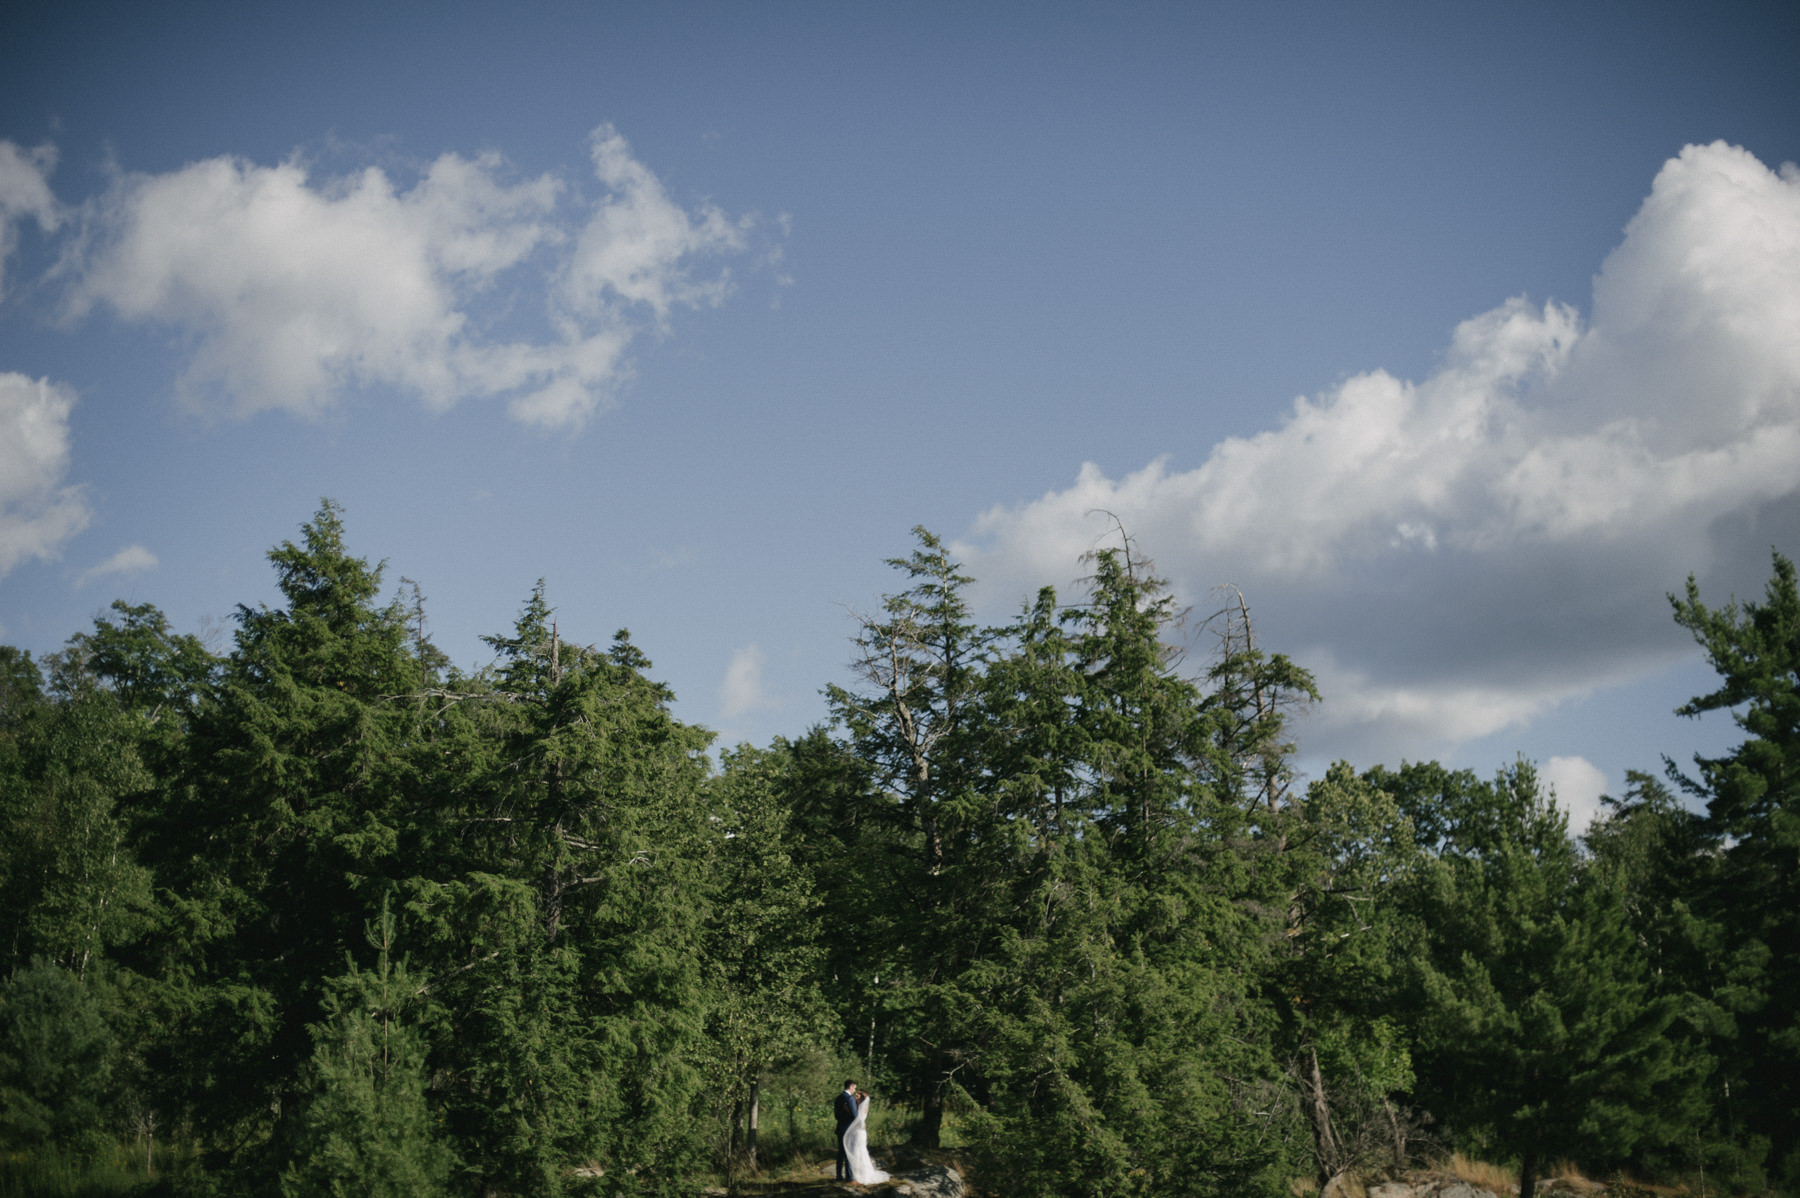 Daring Wanderer Photography - Daring Wanderer - Muskoka wedding photographer - Ontario wedding photographer - northern ontario wedding photographer - ridge at manitou wedding - cottage wedding - intimate cottage wedding